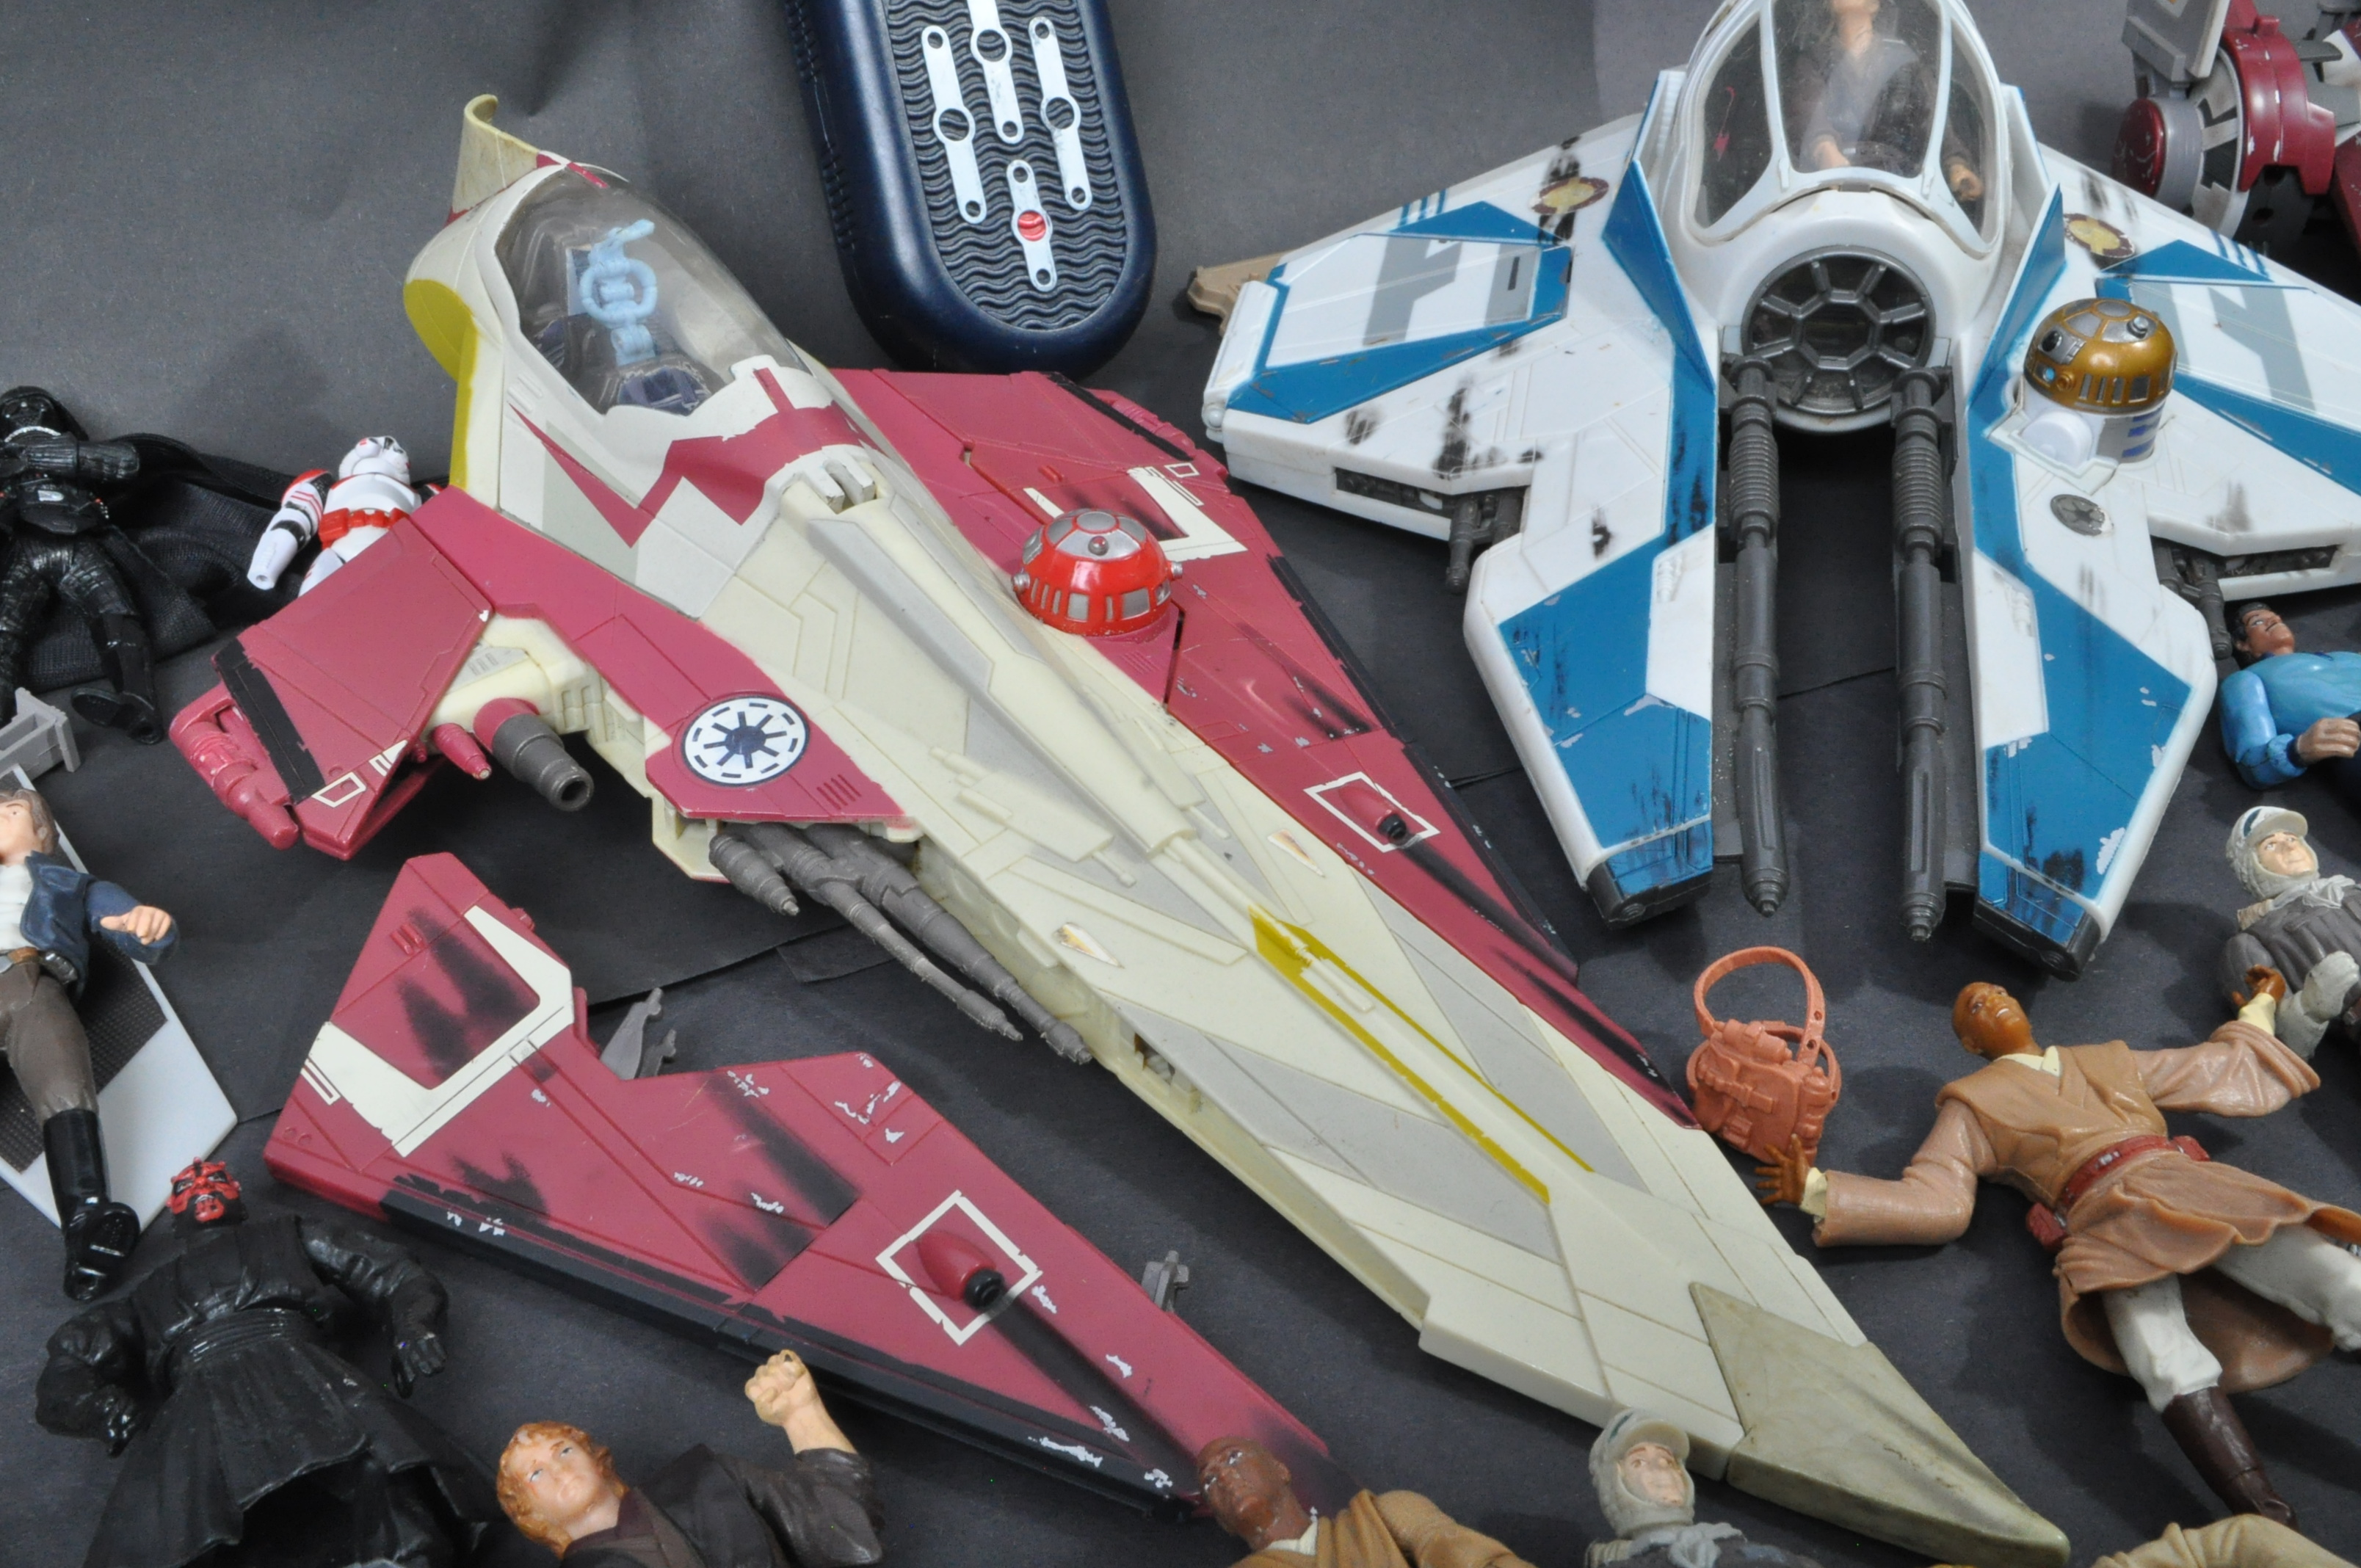 STAR WARS - LARGE COLLECTION KENNER / HASBRO CLONE WARS & OTHER FIGURES - Image 6 of 10